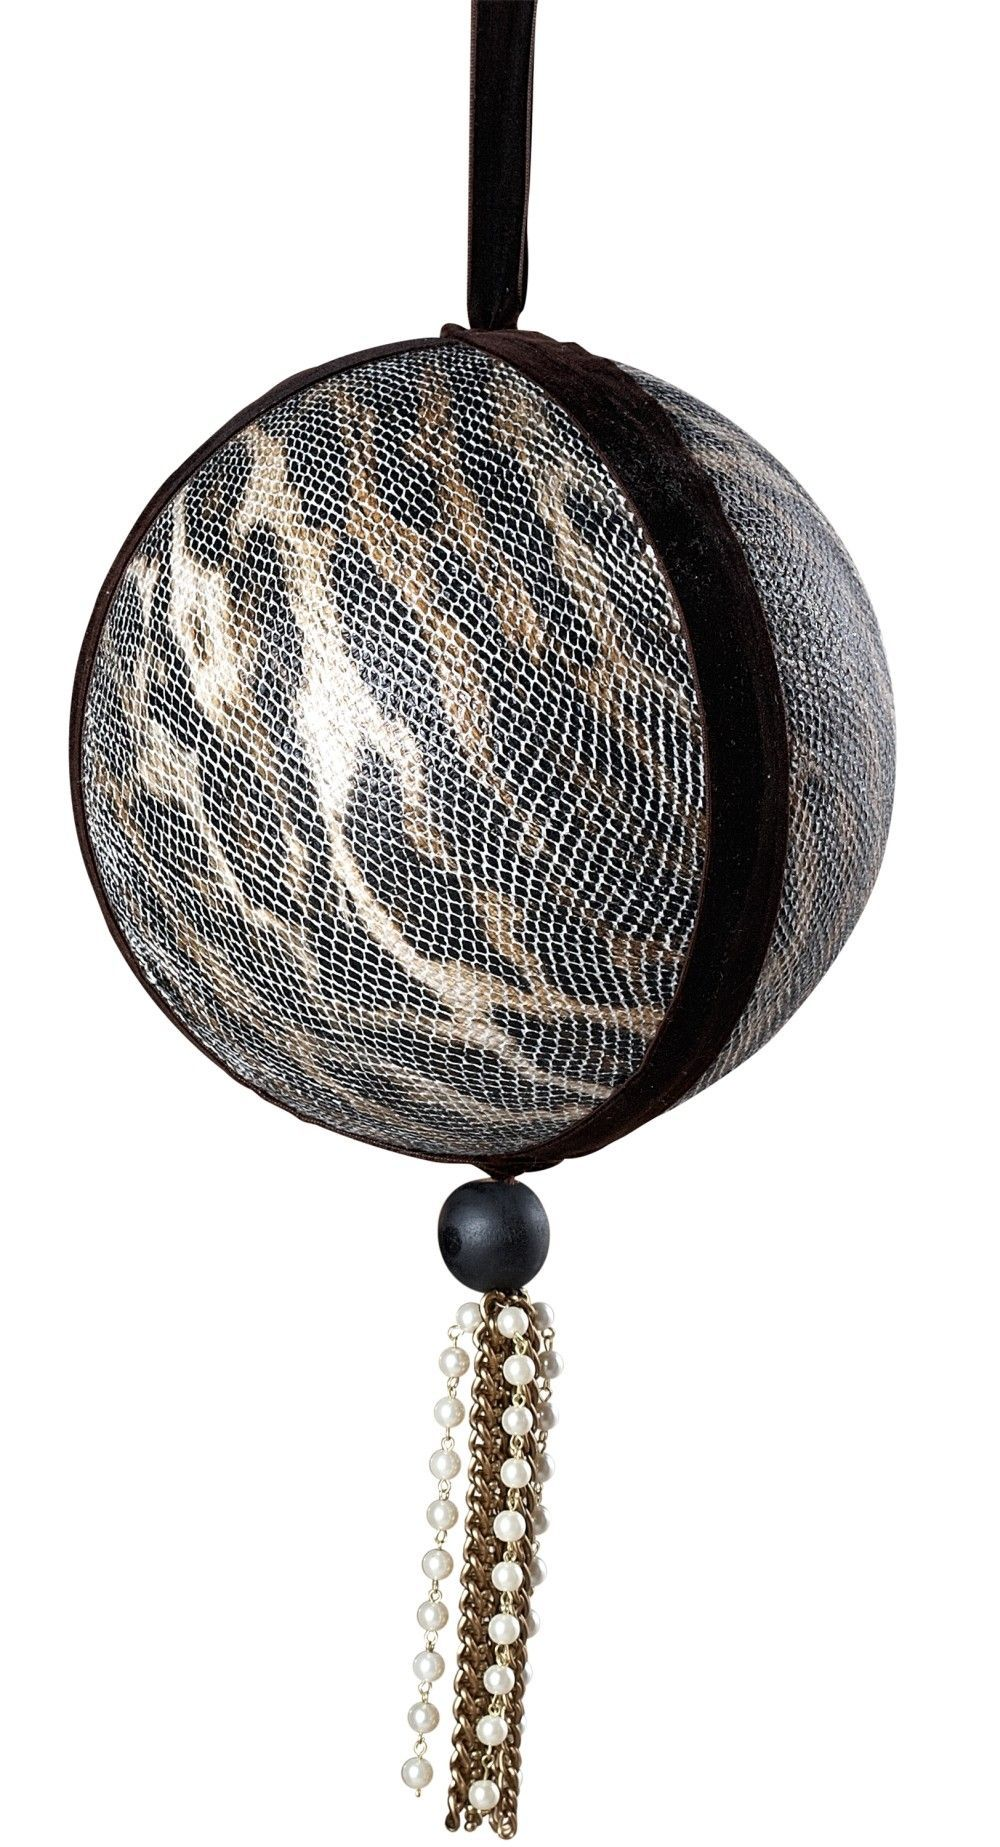 Voyager Faux Snakeskin Ball Ornament (Set of 6)